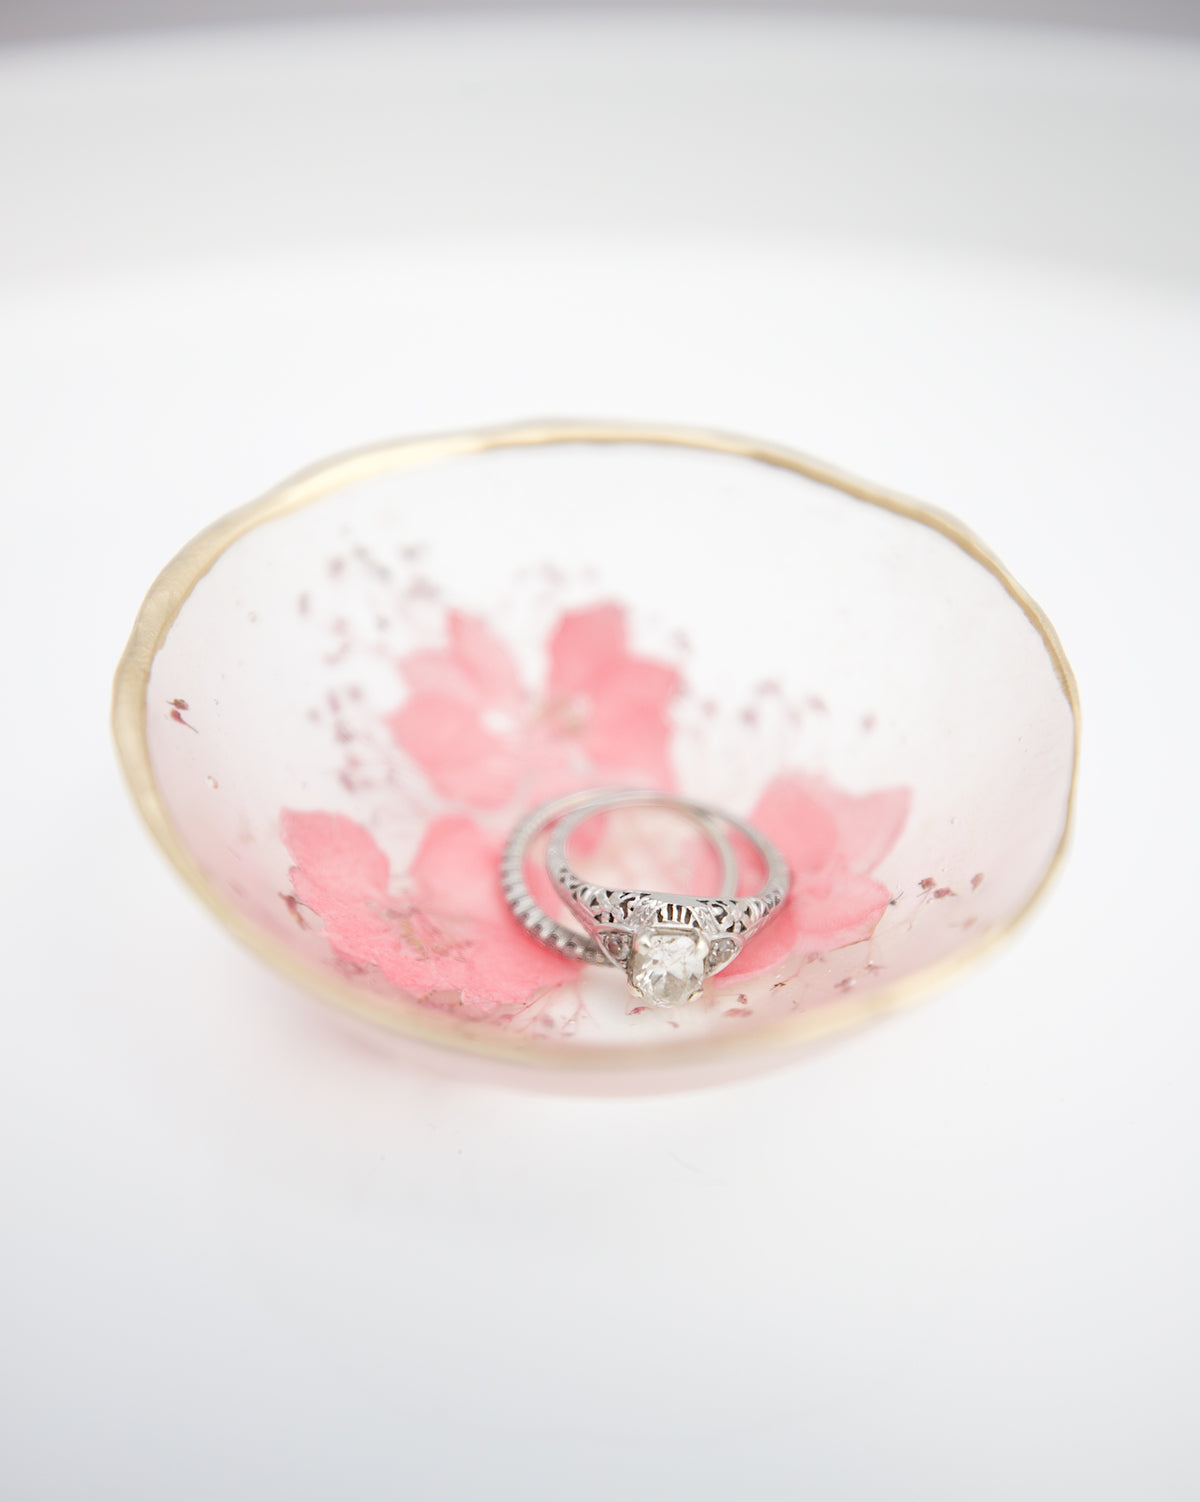 Blushing Jewelry Dish